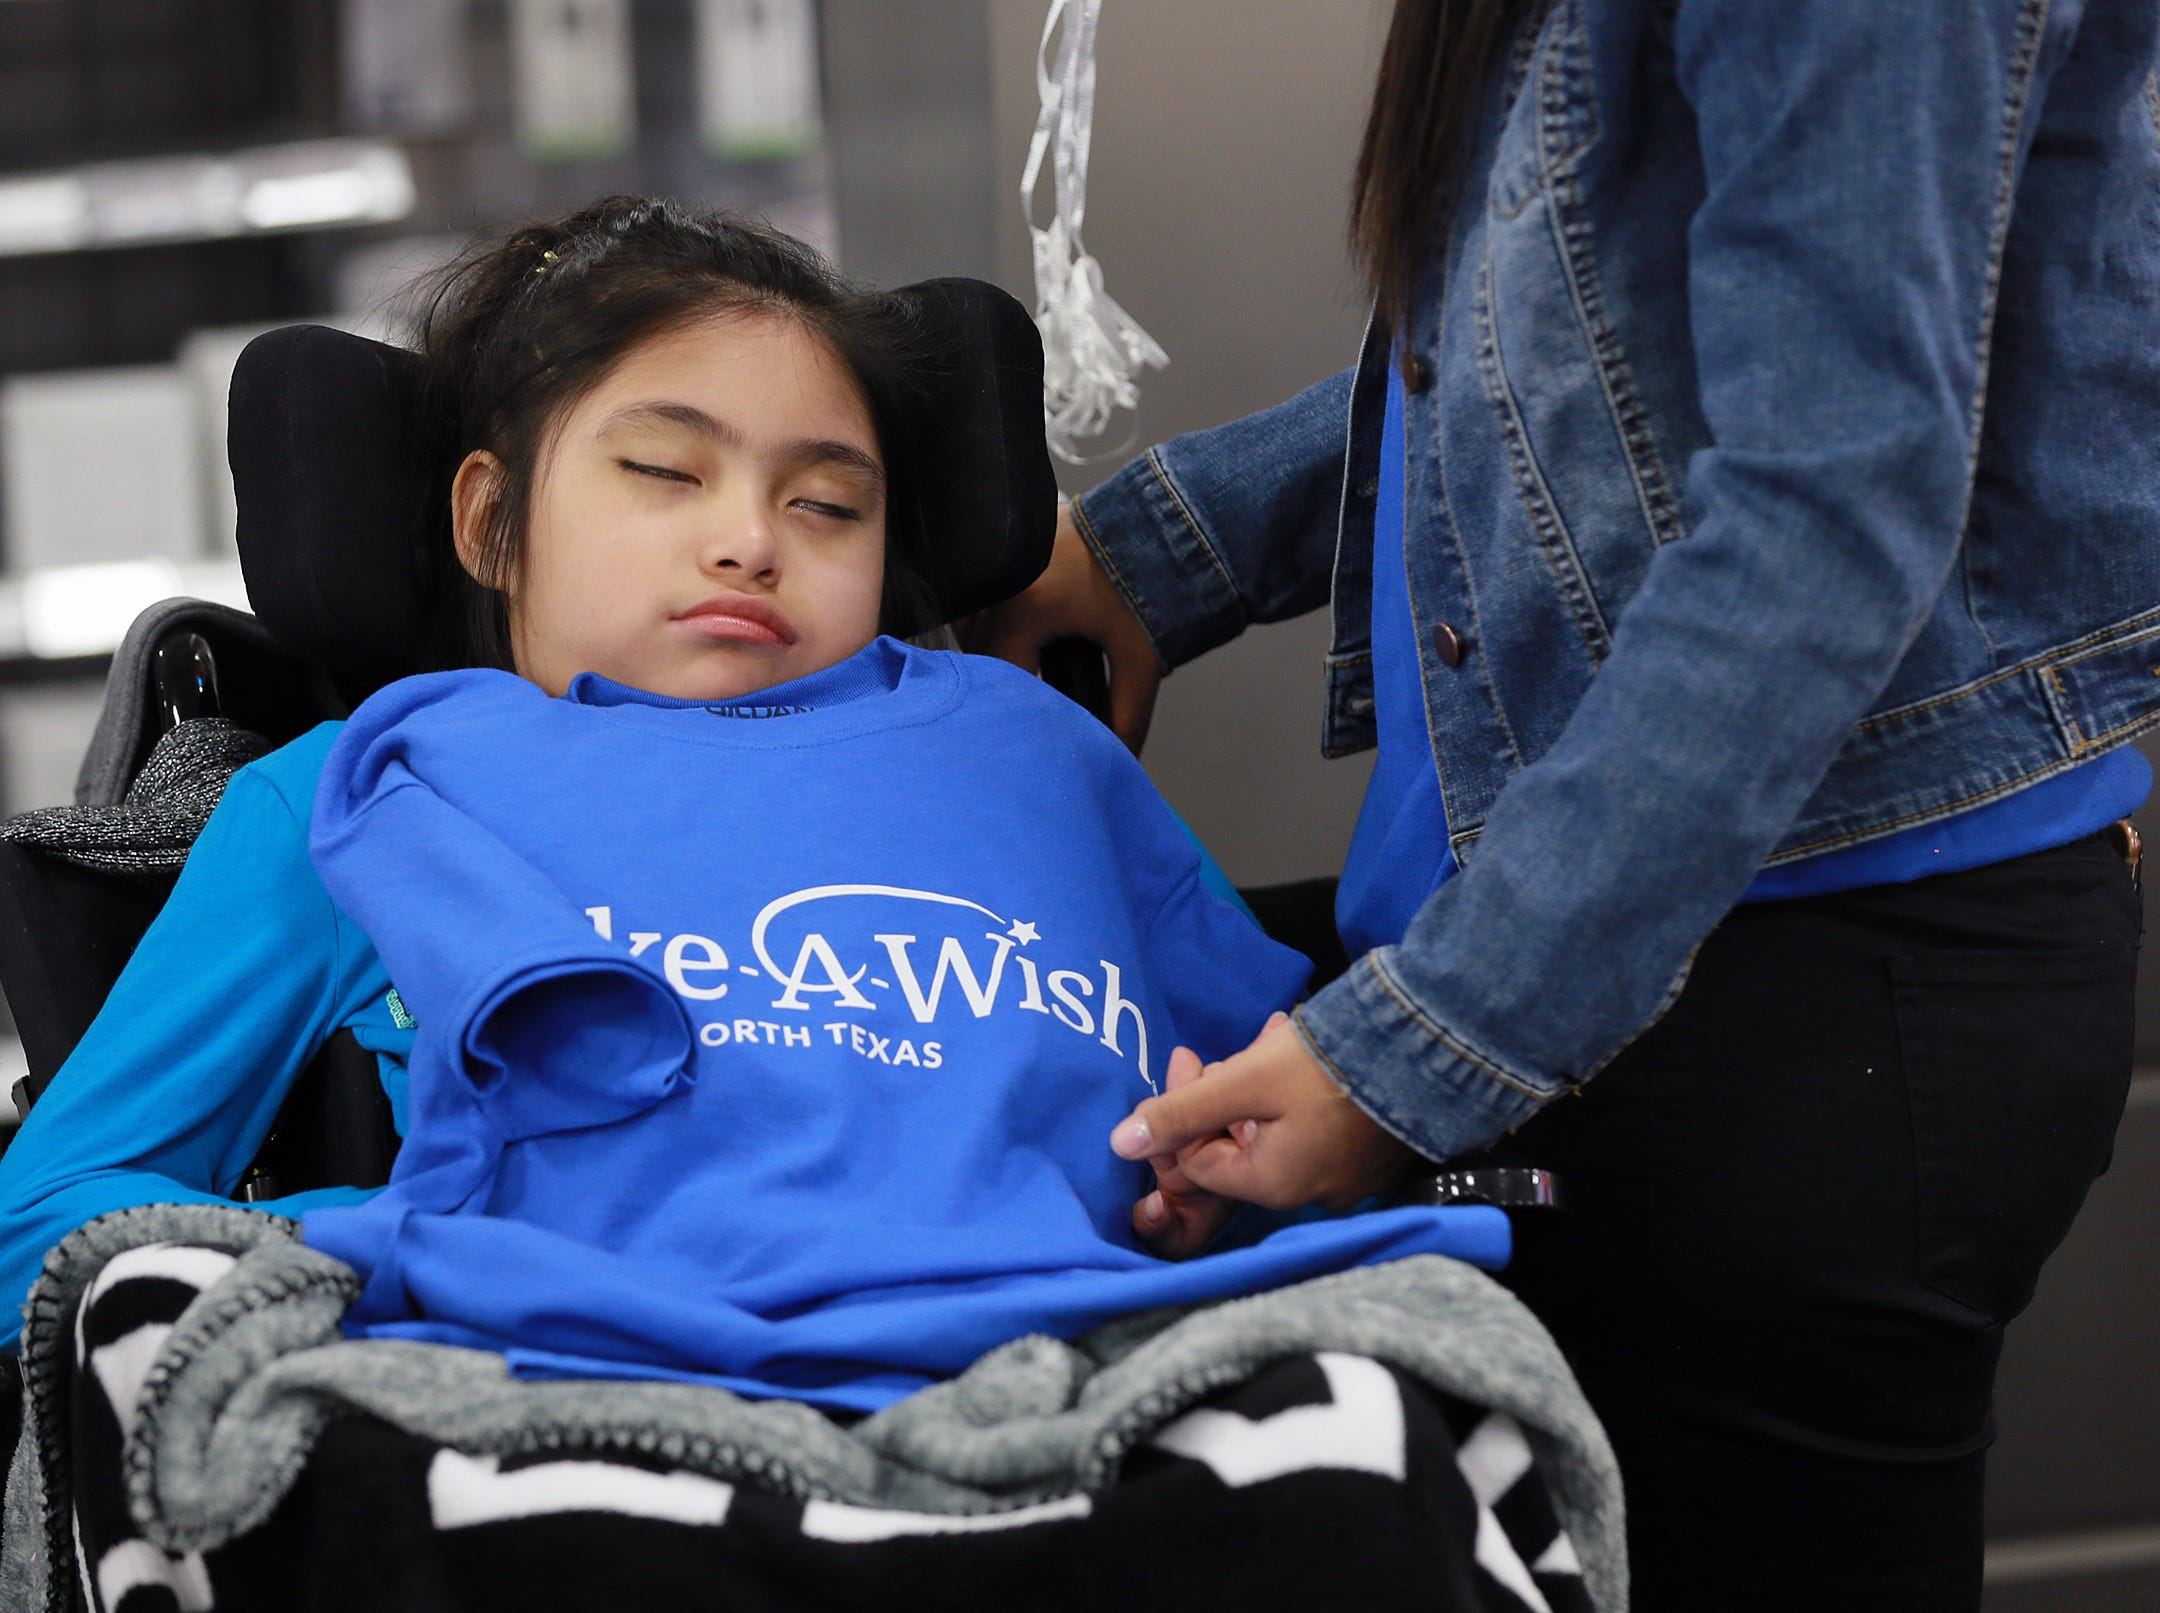 Make-a-Wish Foundation took 10-year-old Yennifer Juarez on an electronics shopping spree Sunday. The girl was given $1,700 and several personal shoppers to help the family of five select the best deals. Yennifer's family, father Juan Juarez, mother Maria Juarez and siblings Yessenia and Jimena joined her. The Make-a-Wish Foundation grants wishes to children who are experiencing medical problems.